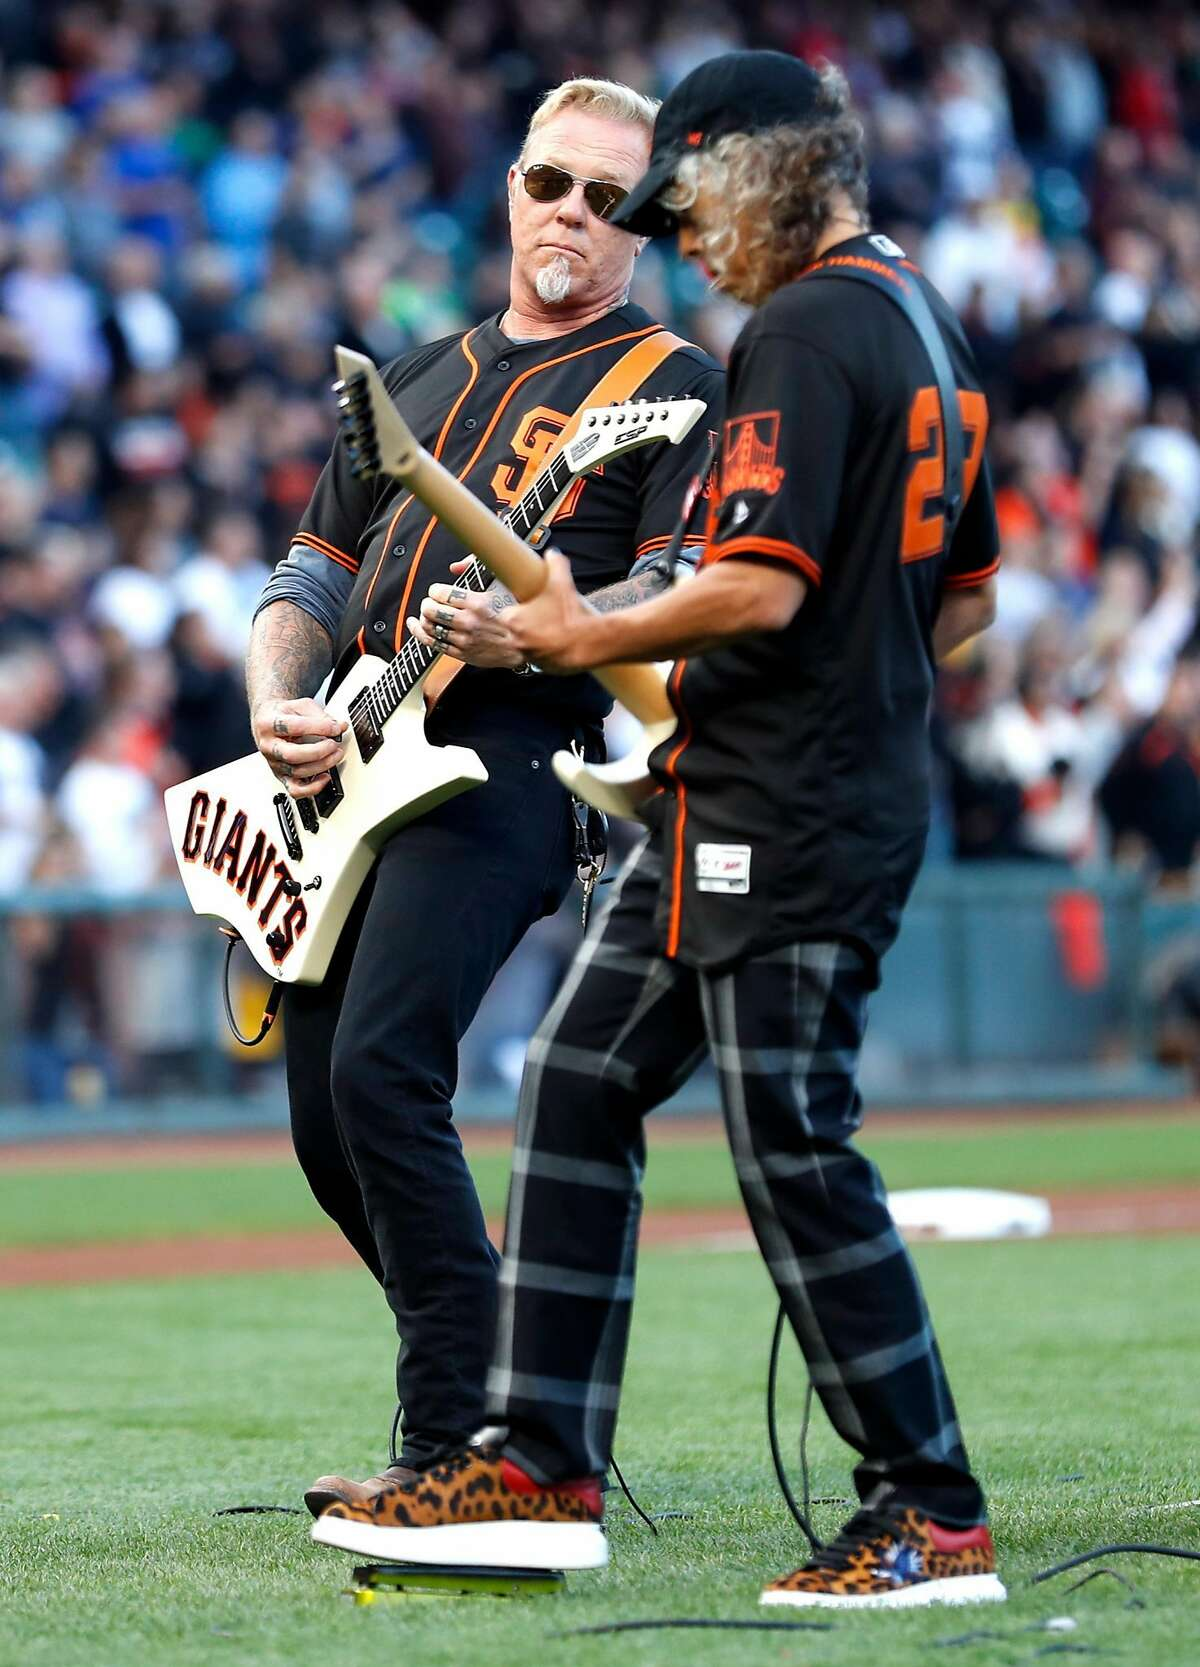 Metallica's James Hatfield and Kirk Hammett perform National Anthem before San Francisco Giants play Chicago Cubs during MLB game at AT&T Park in San Francisco, Calif. on Monday, August 7, 2017.